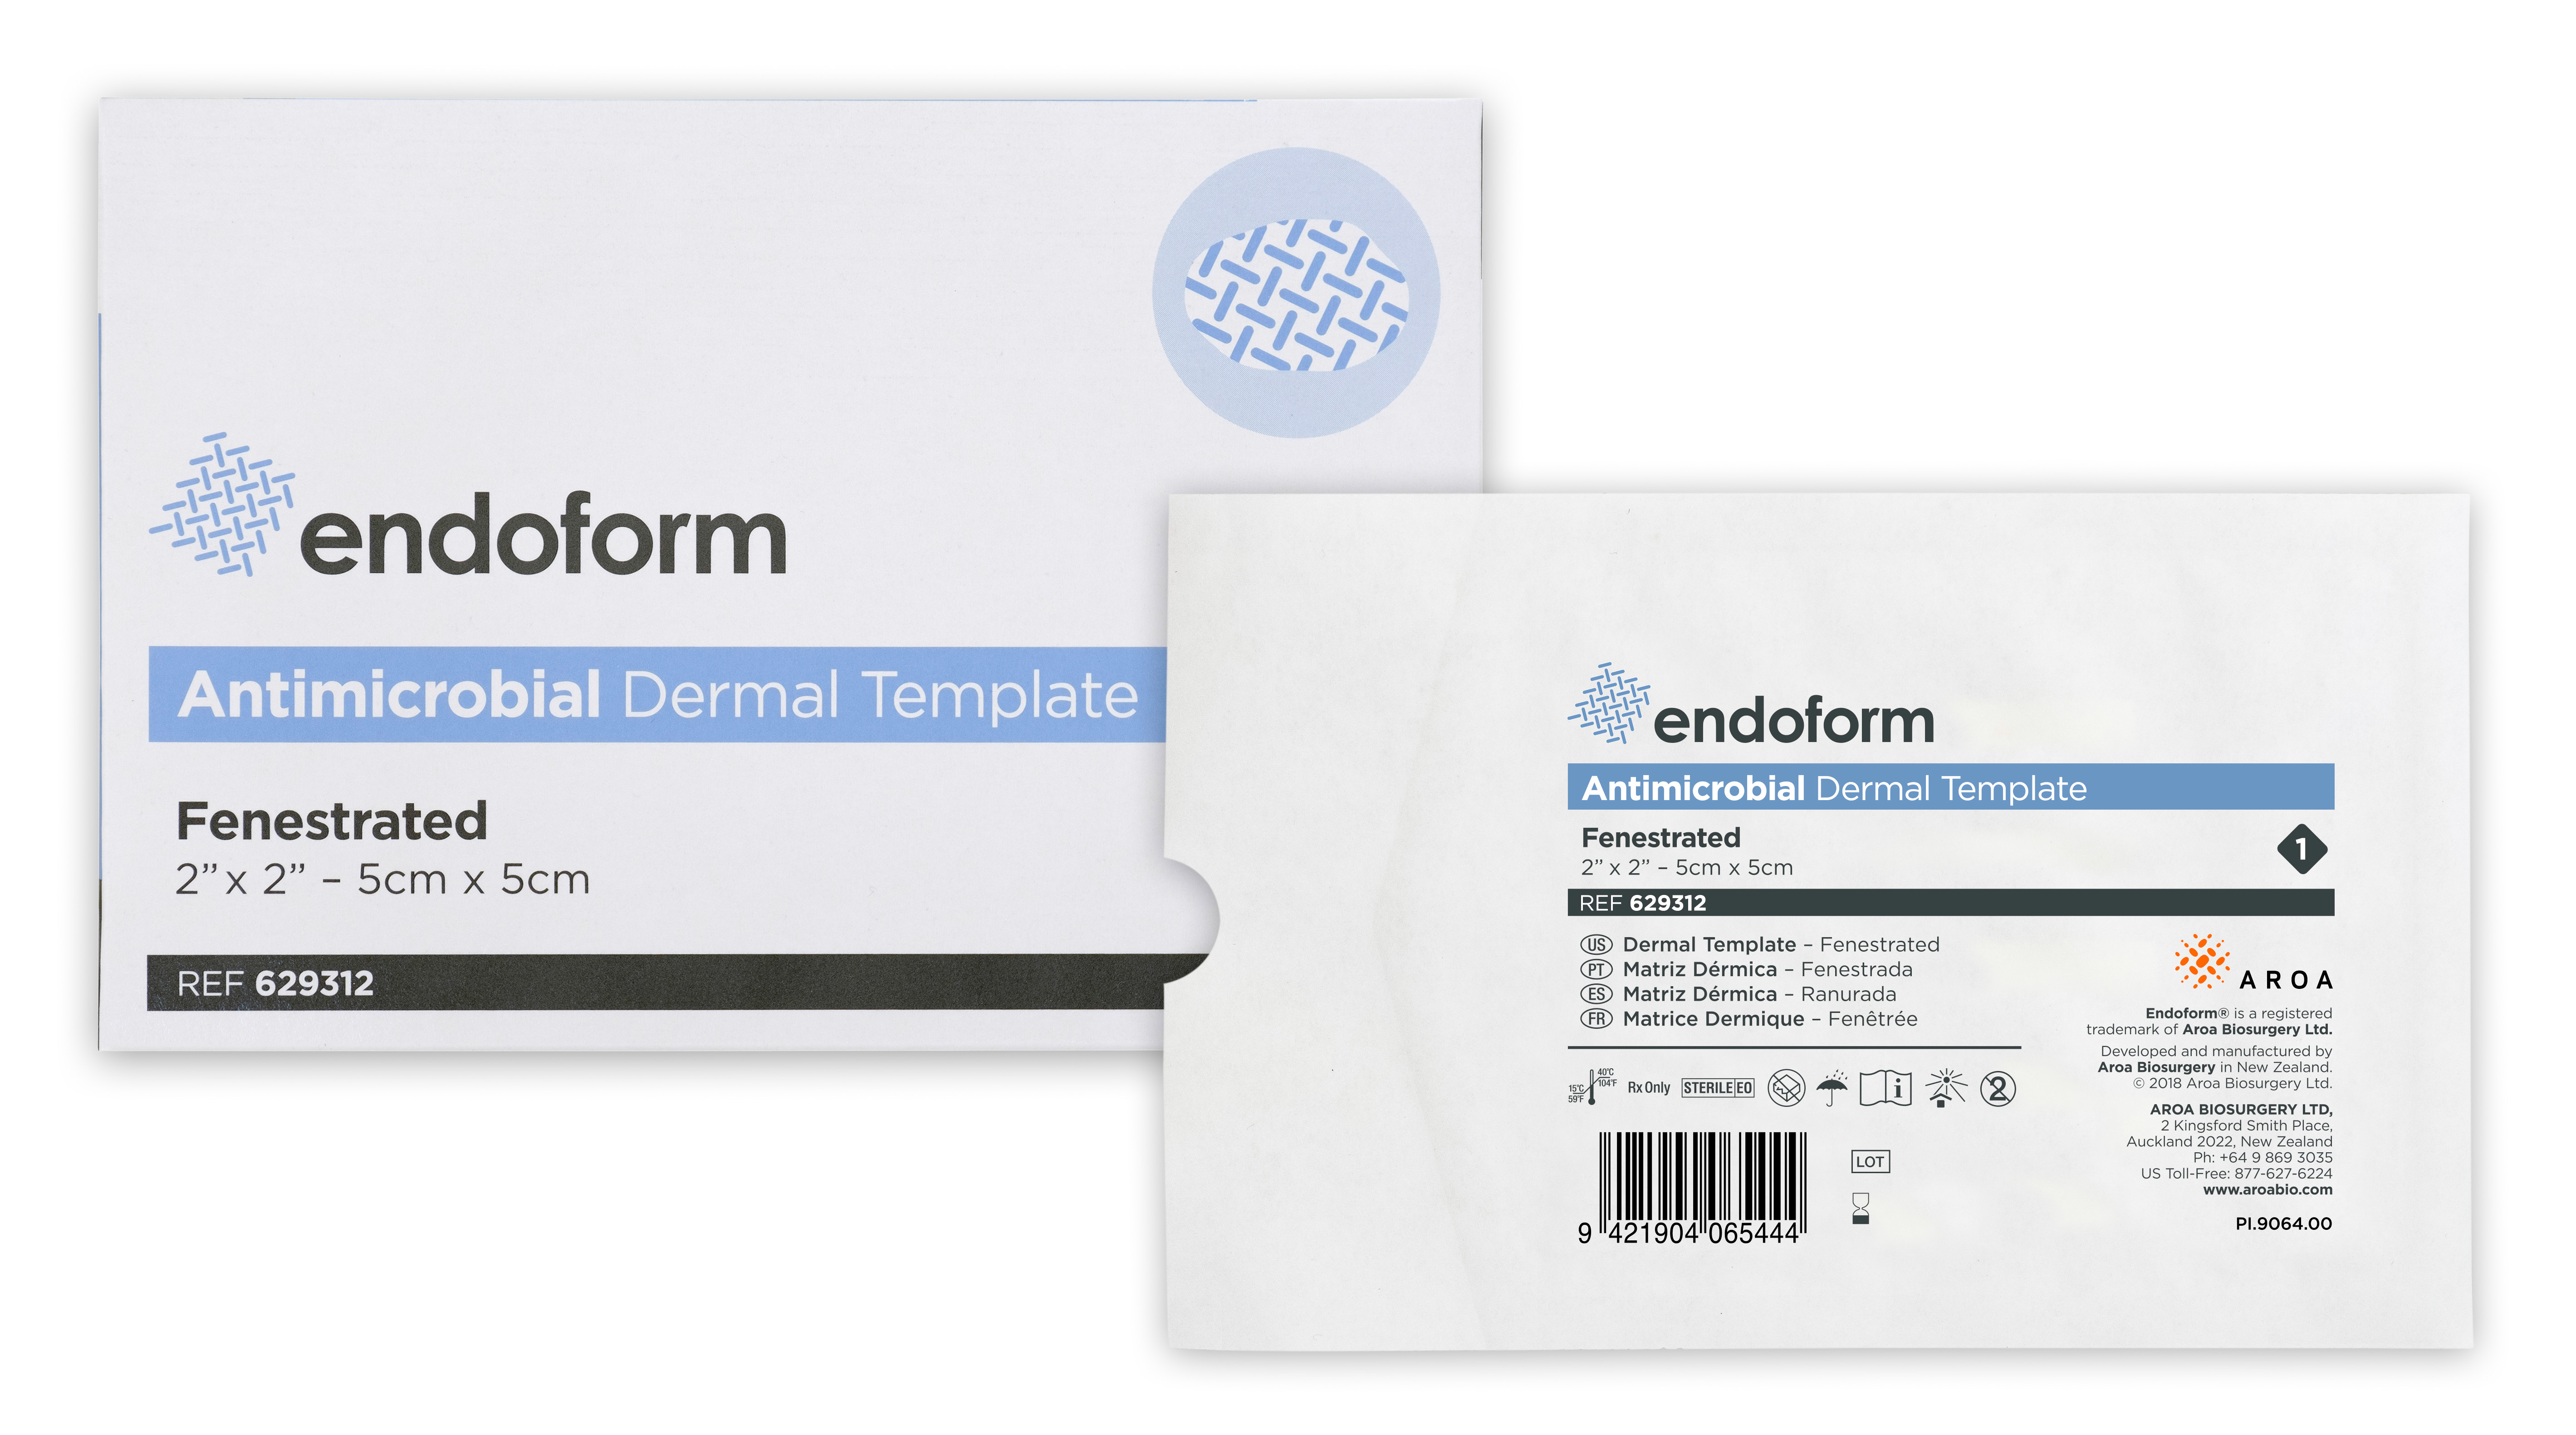 Endoform Antimicrobial Dermal Template Non Fenestrated